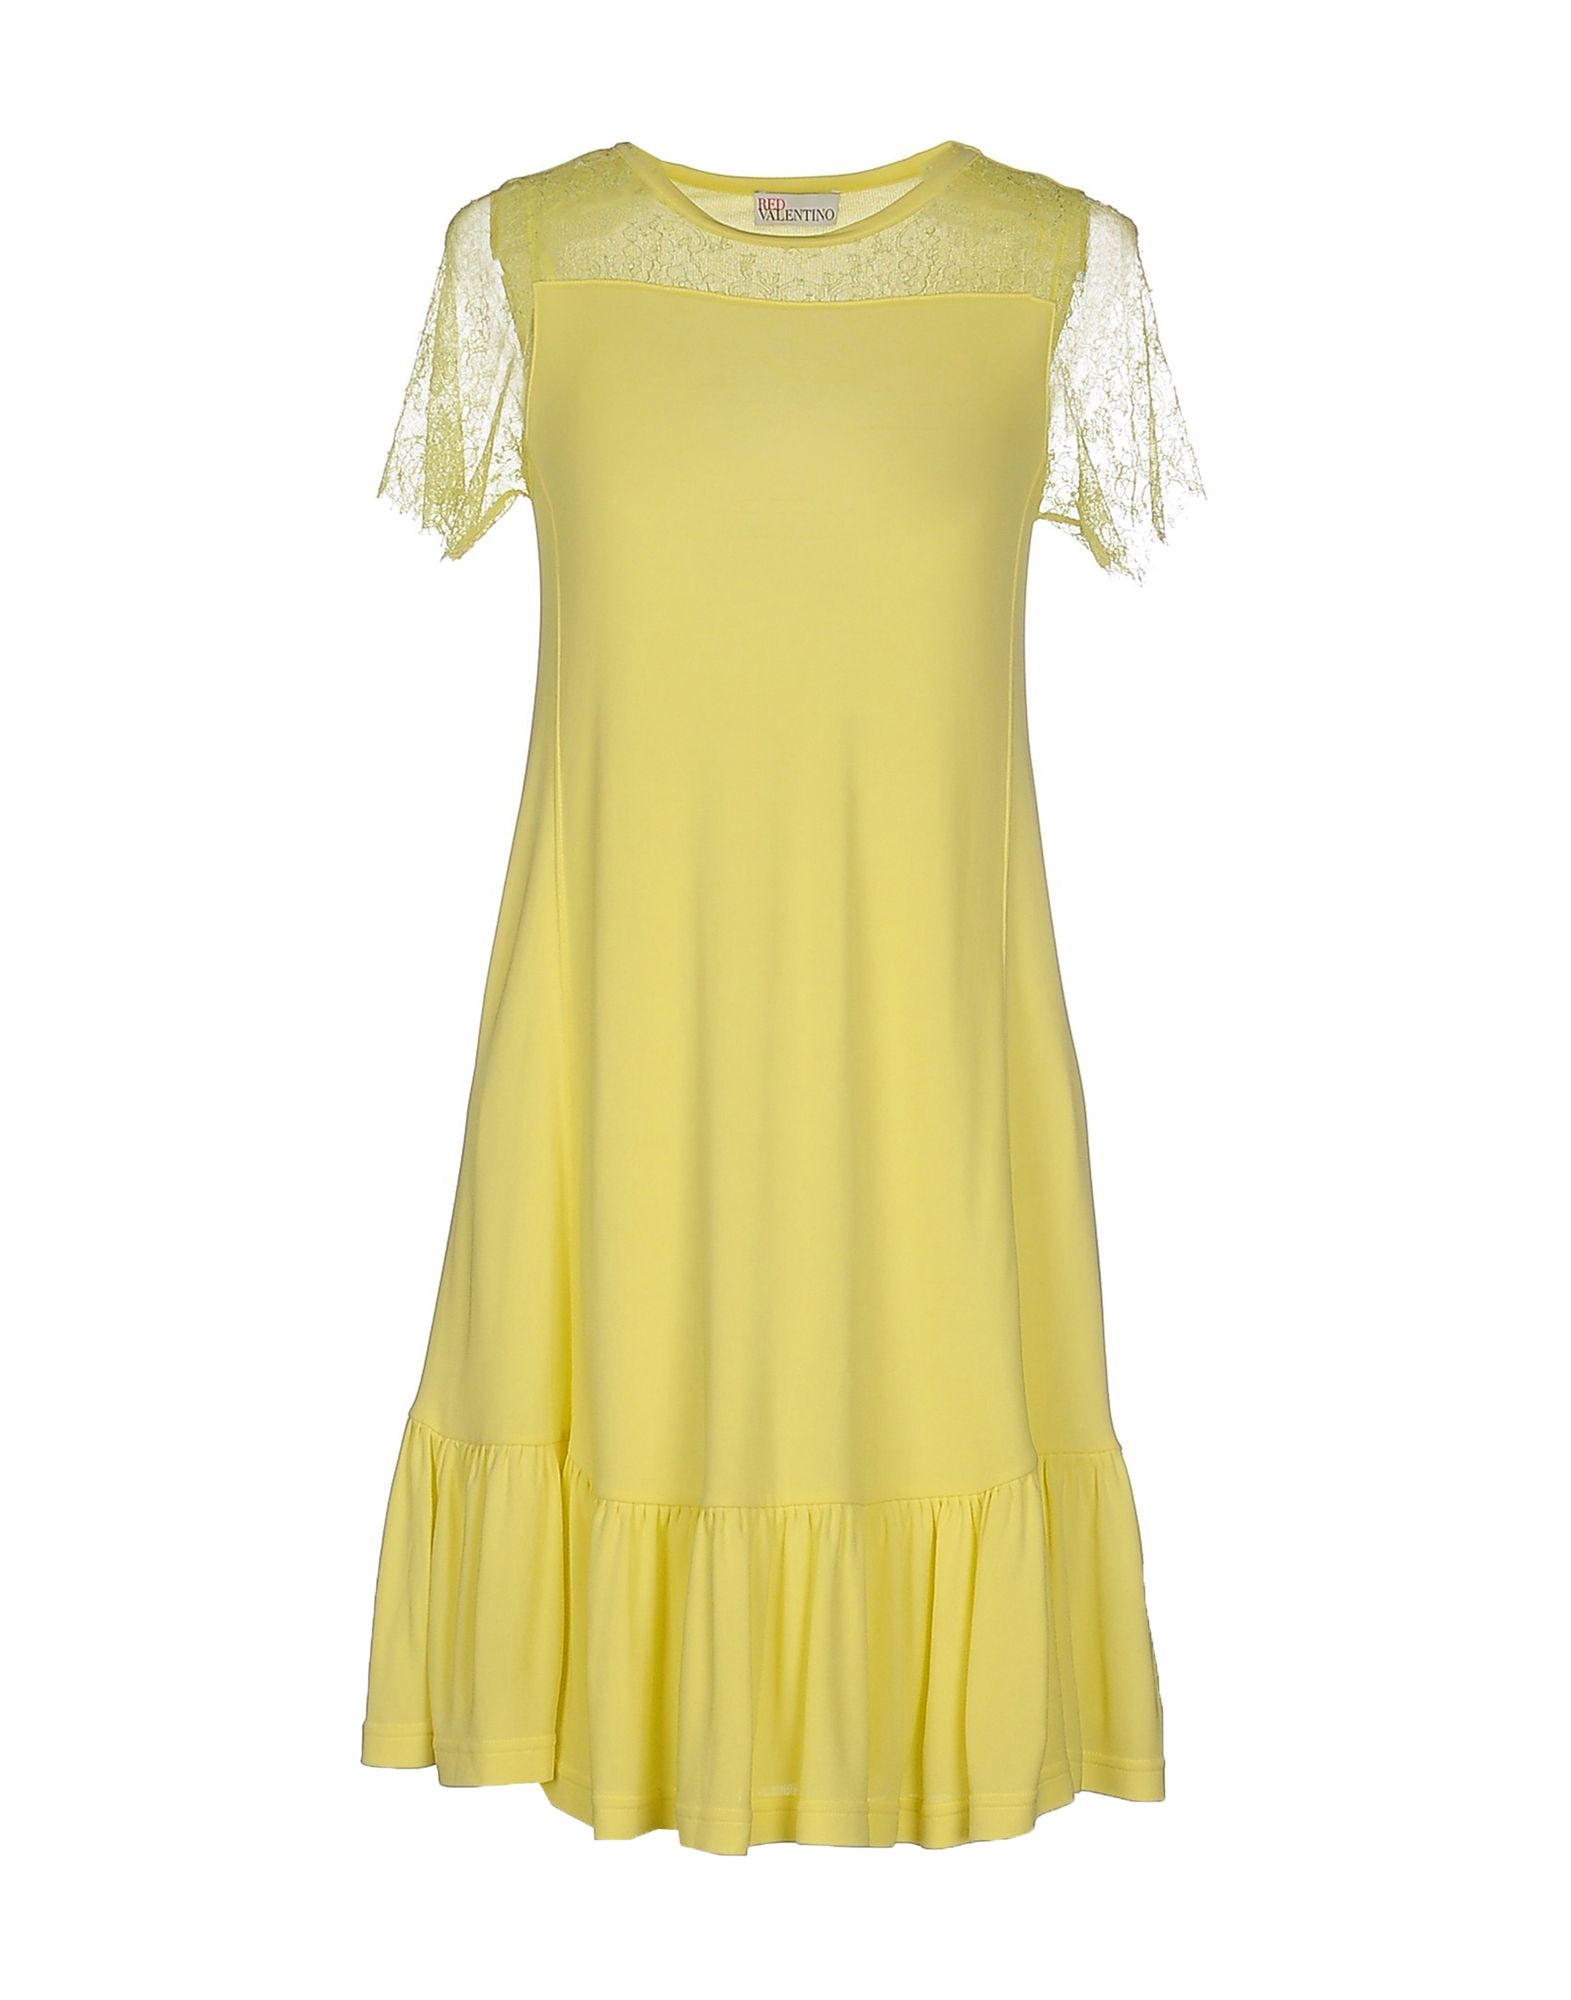 Red valentino Short Dress in Yellow (Light yellow) | Lyst